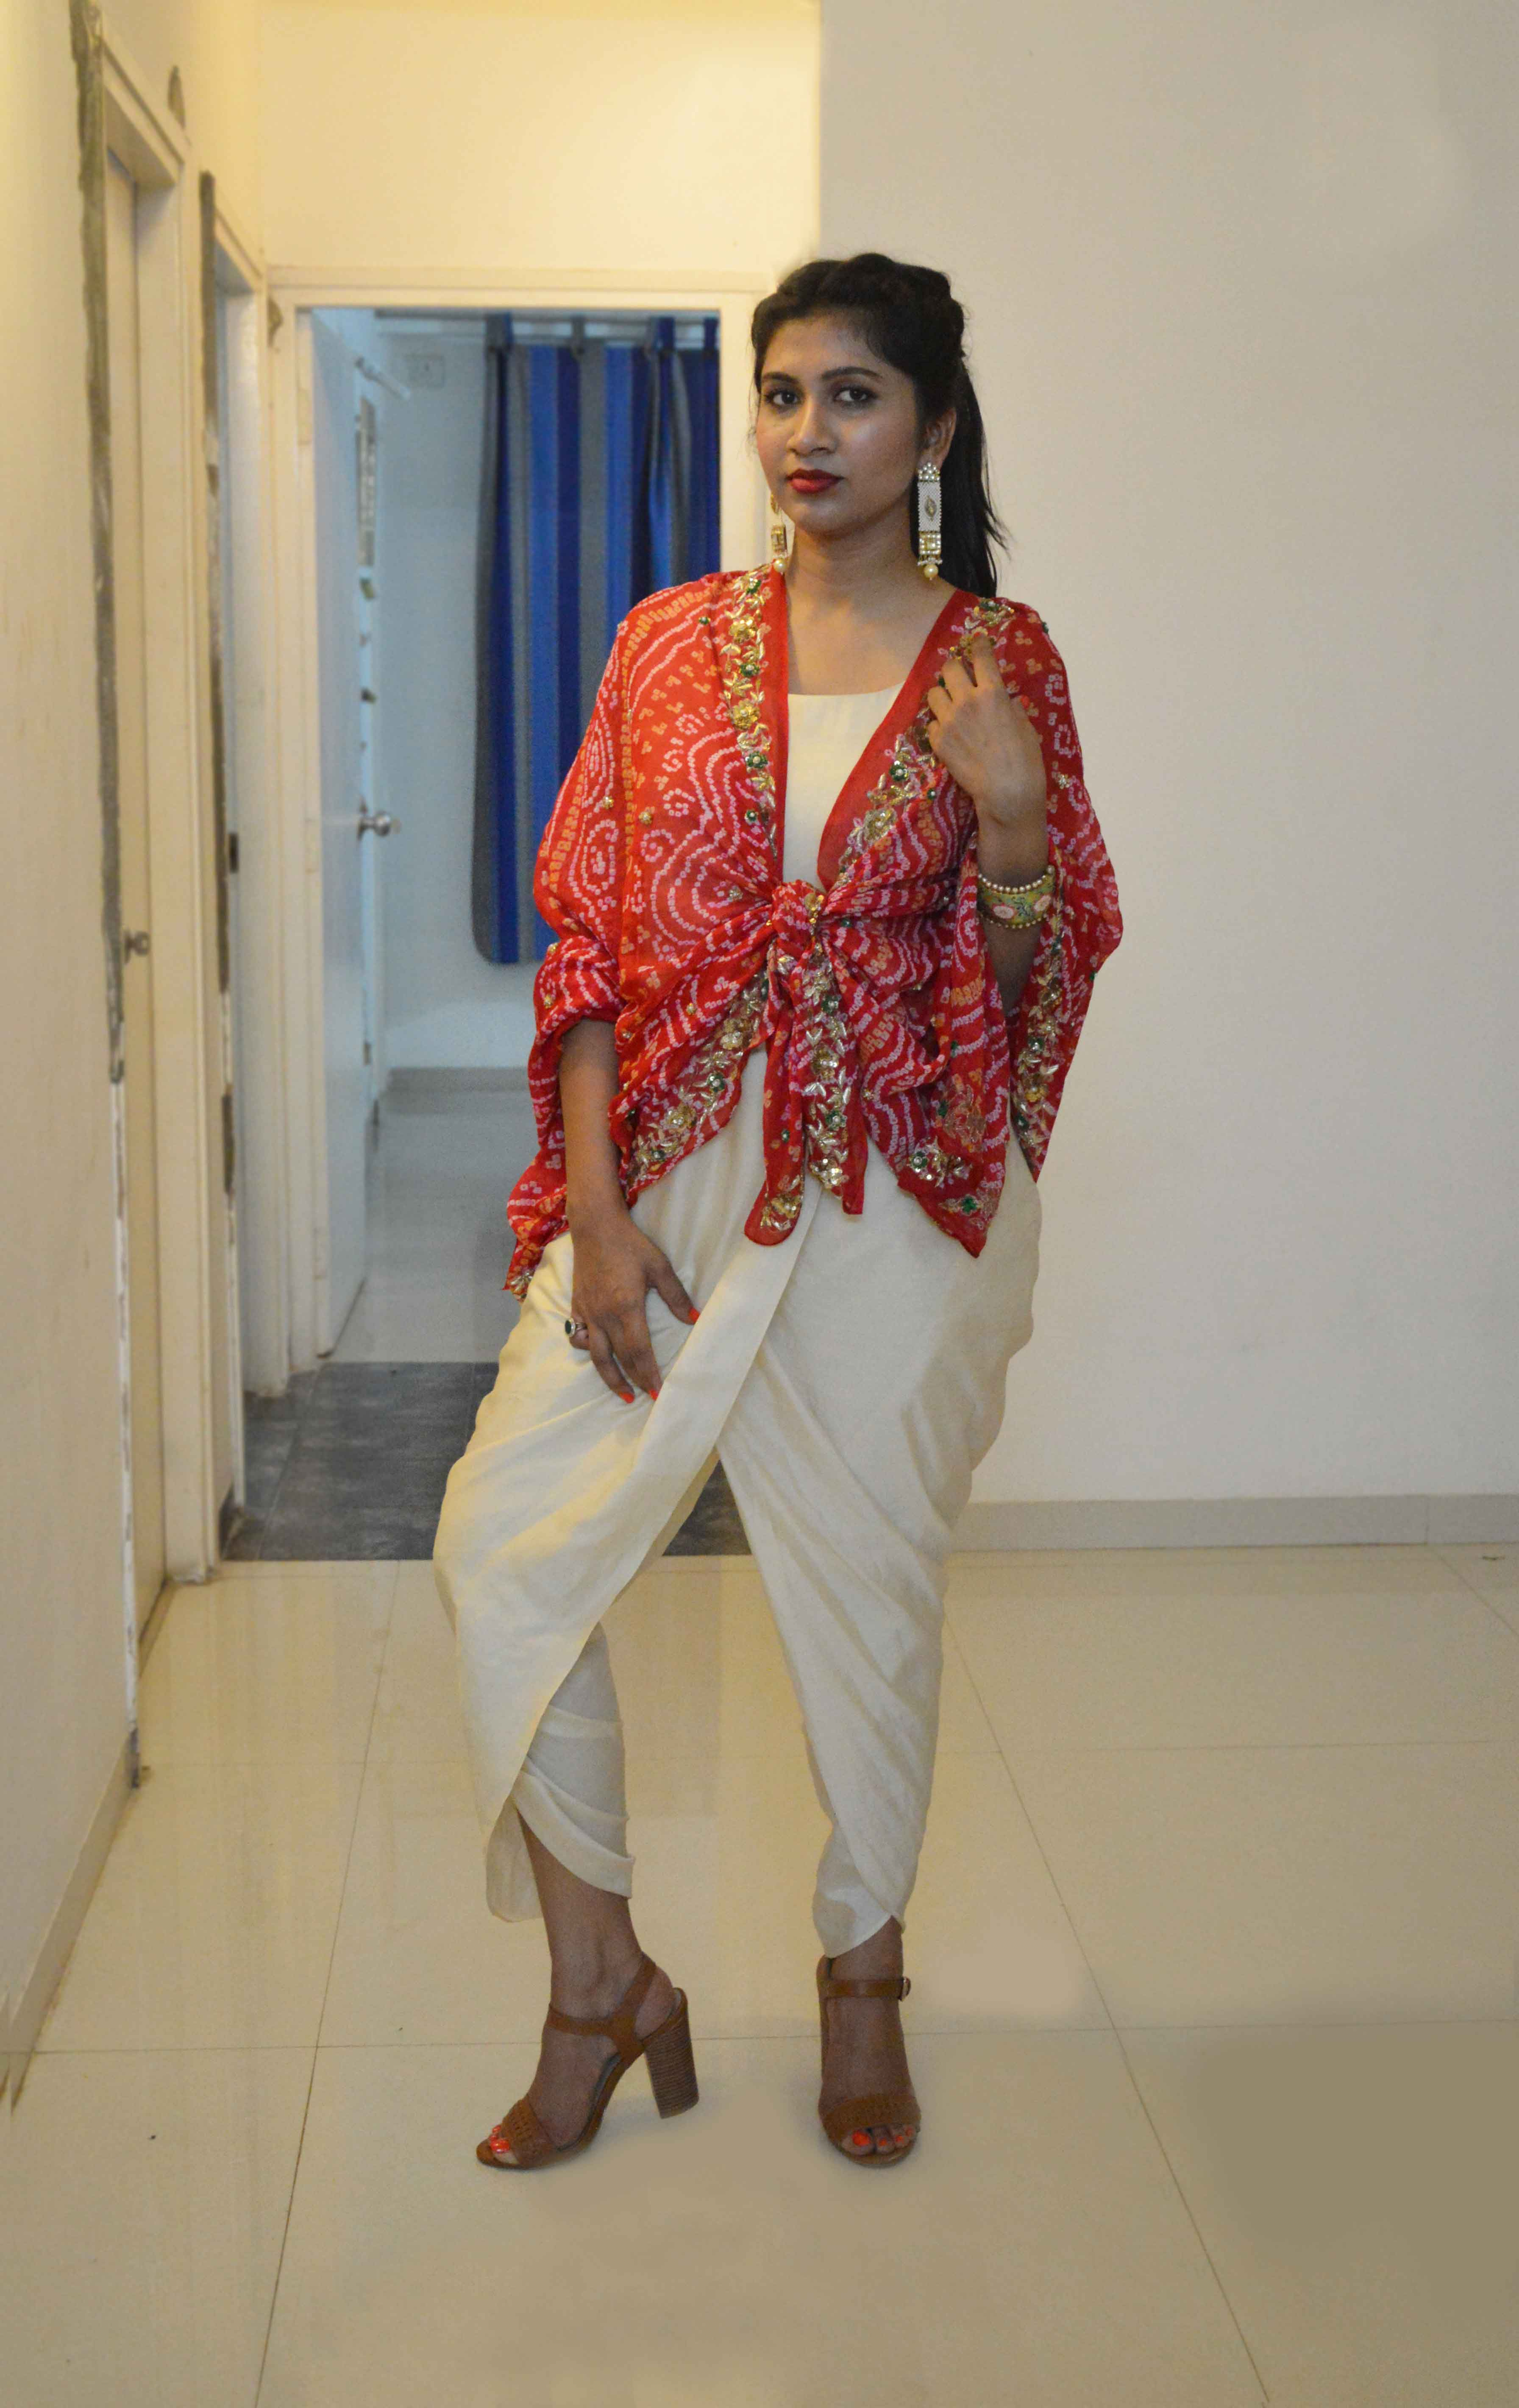 Ciceroni, fashion, lifestyle, shopping in Ahmedabad, your local shopping guide, Diwali look, festive fashion, jumpsuit